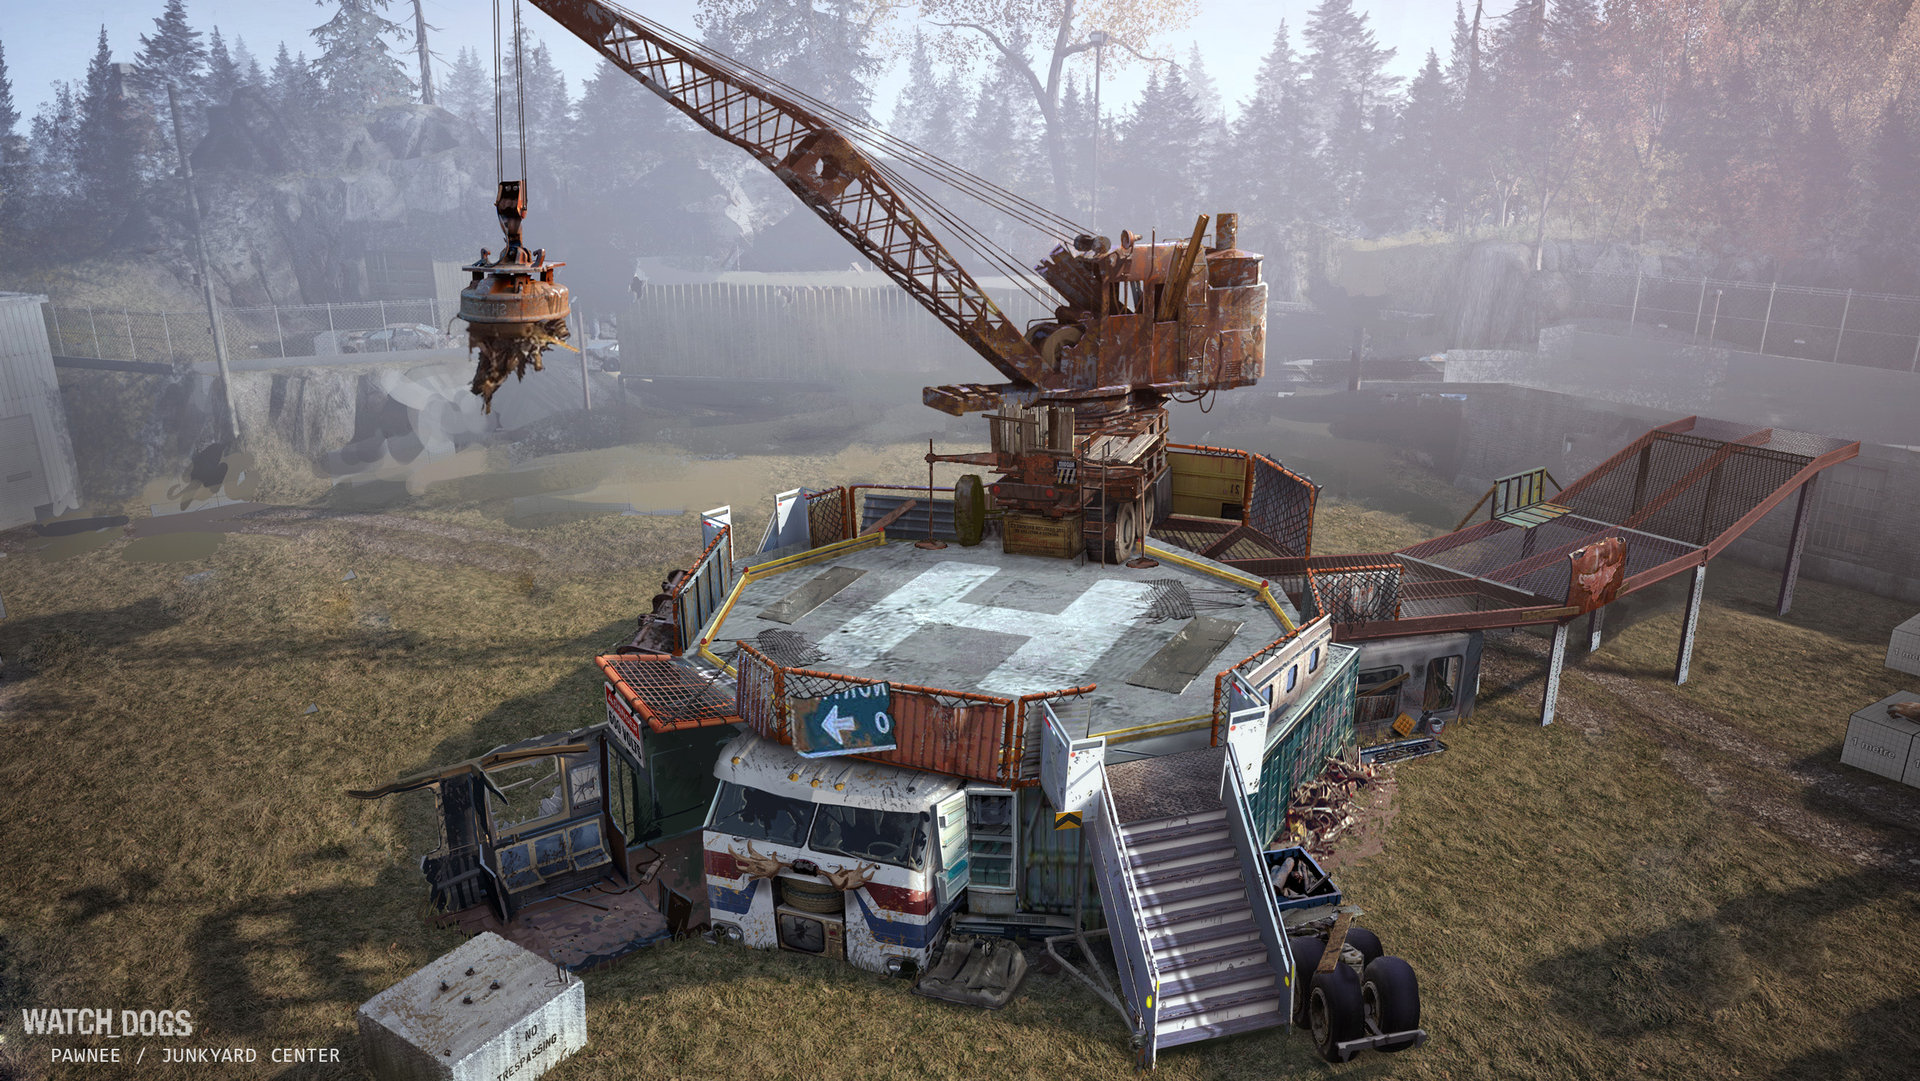 ArtStation - Watch Dogs - T-bone Junkyard concept art, Michel Donze